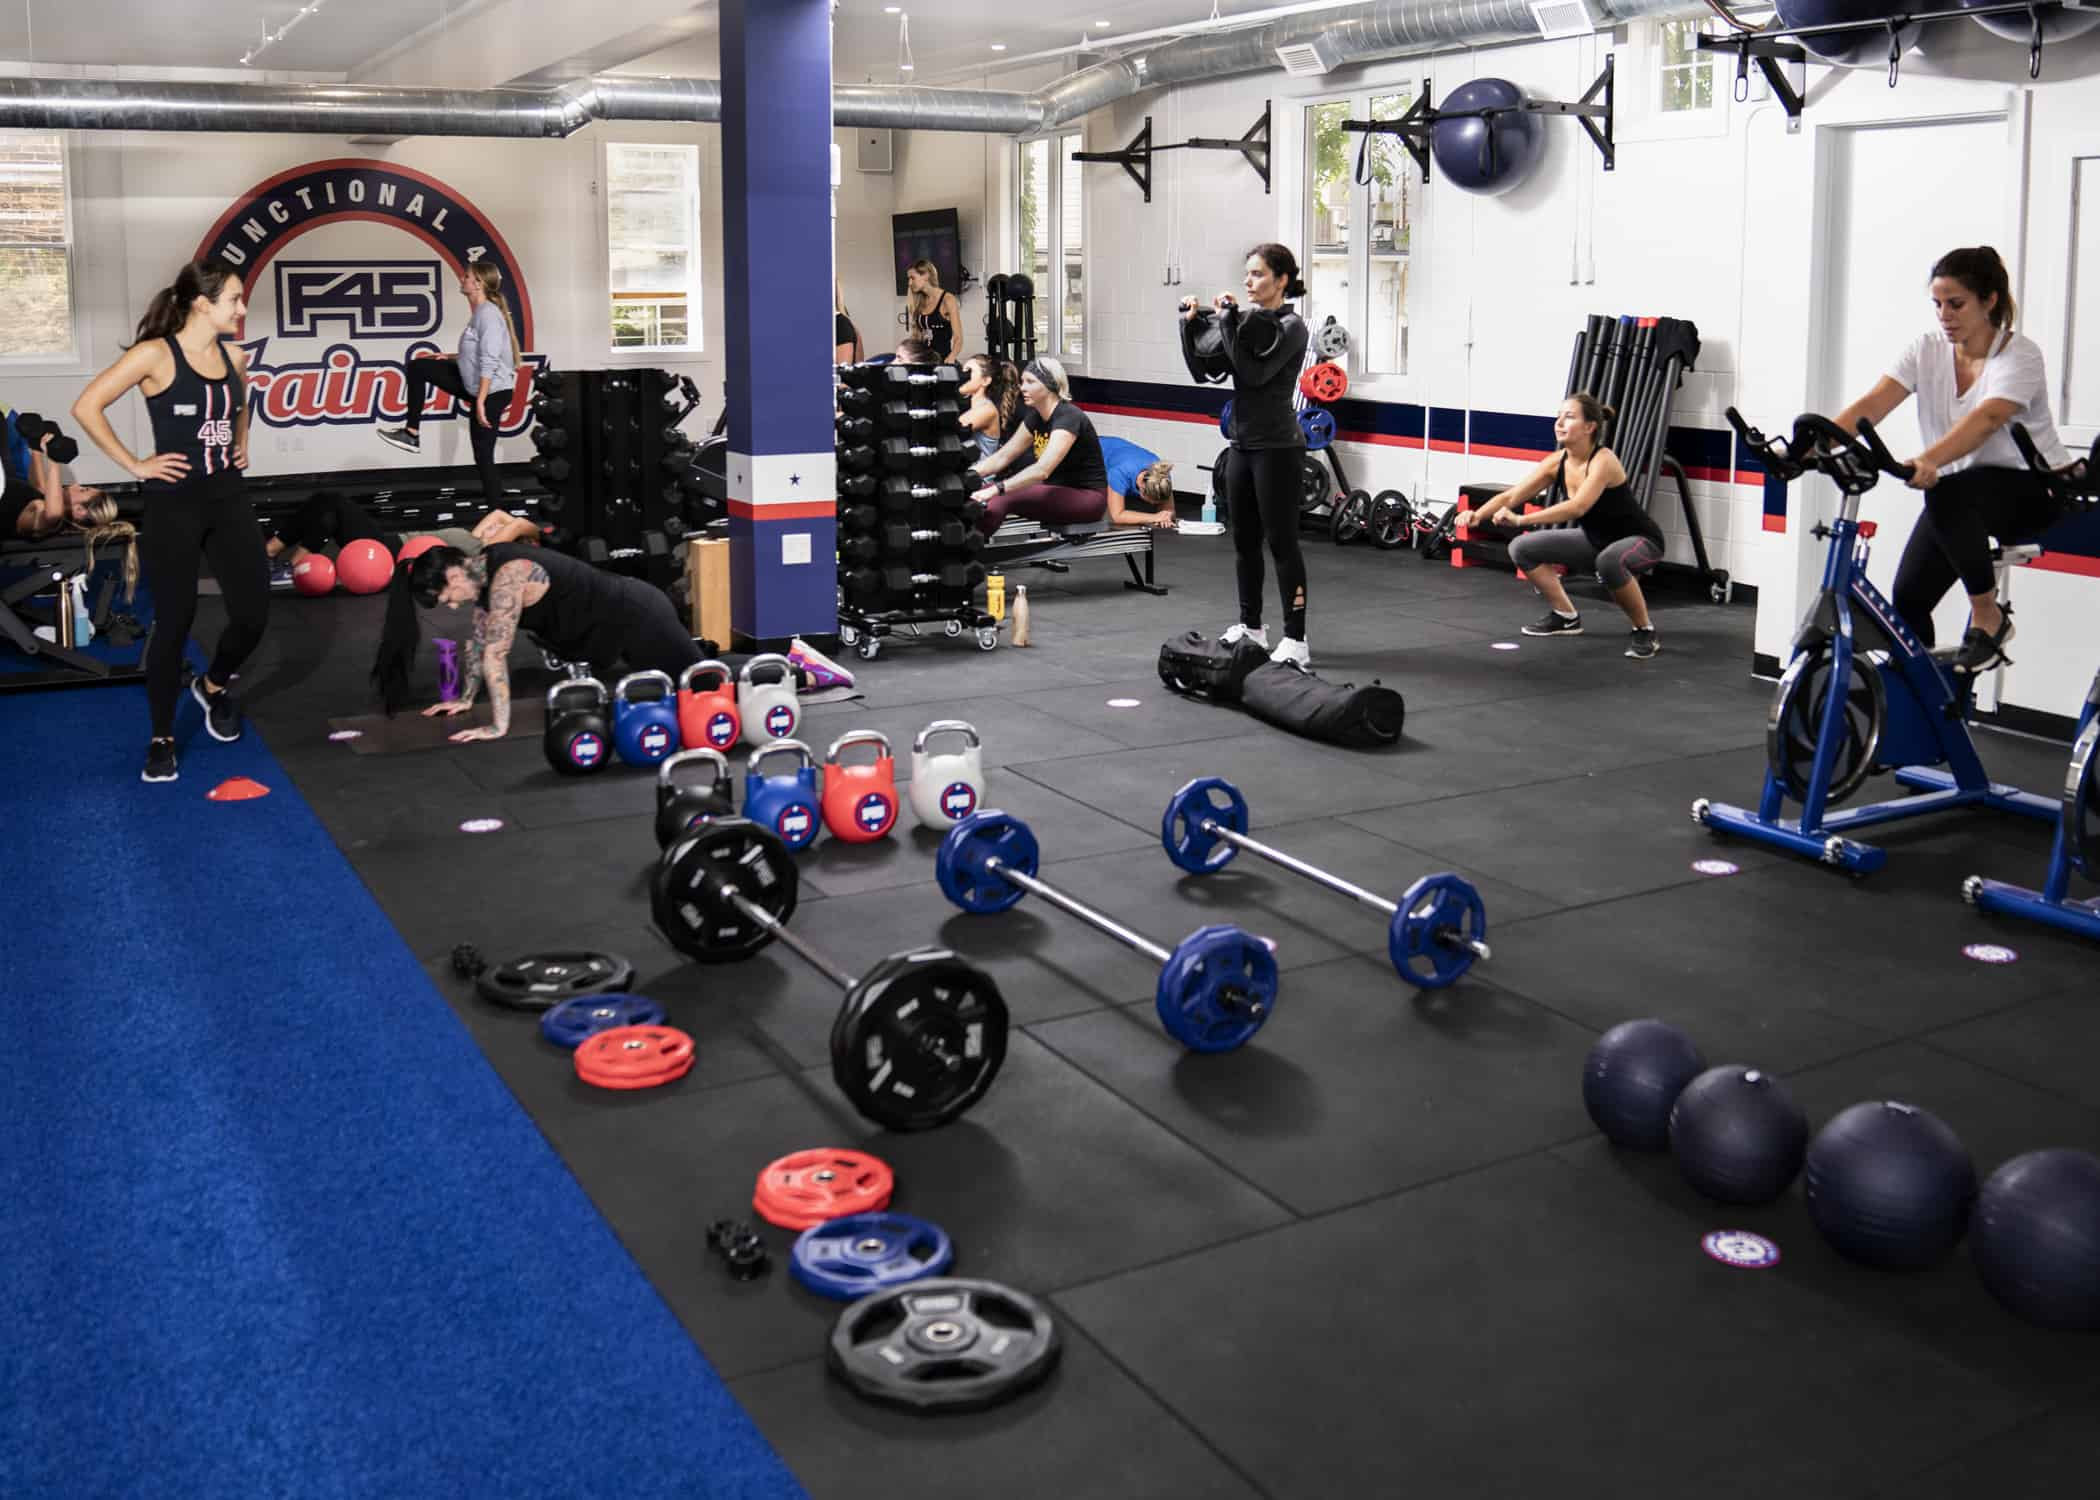 F45 - F45 Hamilton Downtown offers 45-minute, high-intensity, functional, circuit-training workout classes in a boutique studio. F45 is one of the world's fastest-growing workouts, and this is the the city's first location.Malleum moved walls, added a state-of-the-art workout floor, soundproofed, built washrooms with showers featuring floor-to-ceiling mosaic tiles at The Wellington.